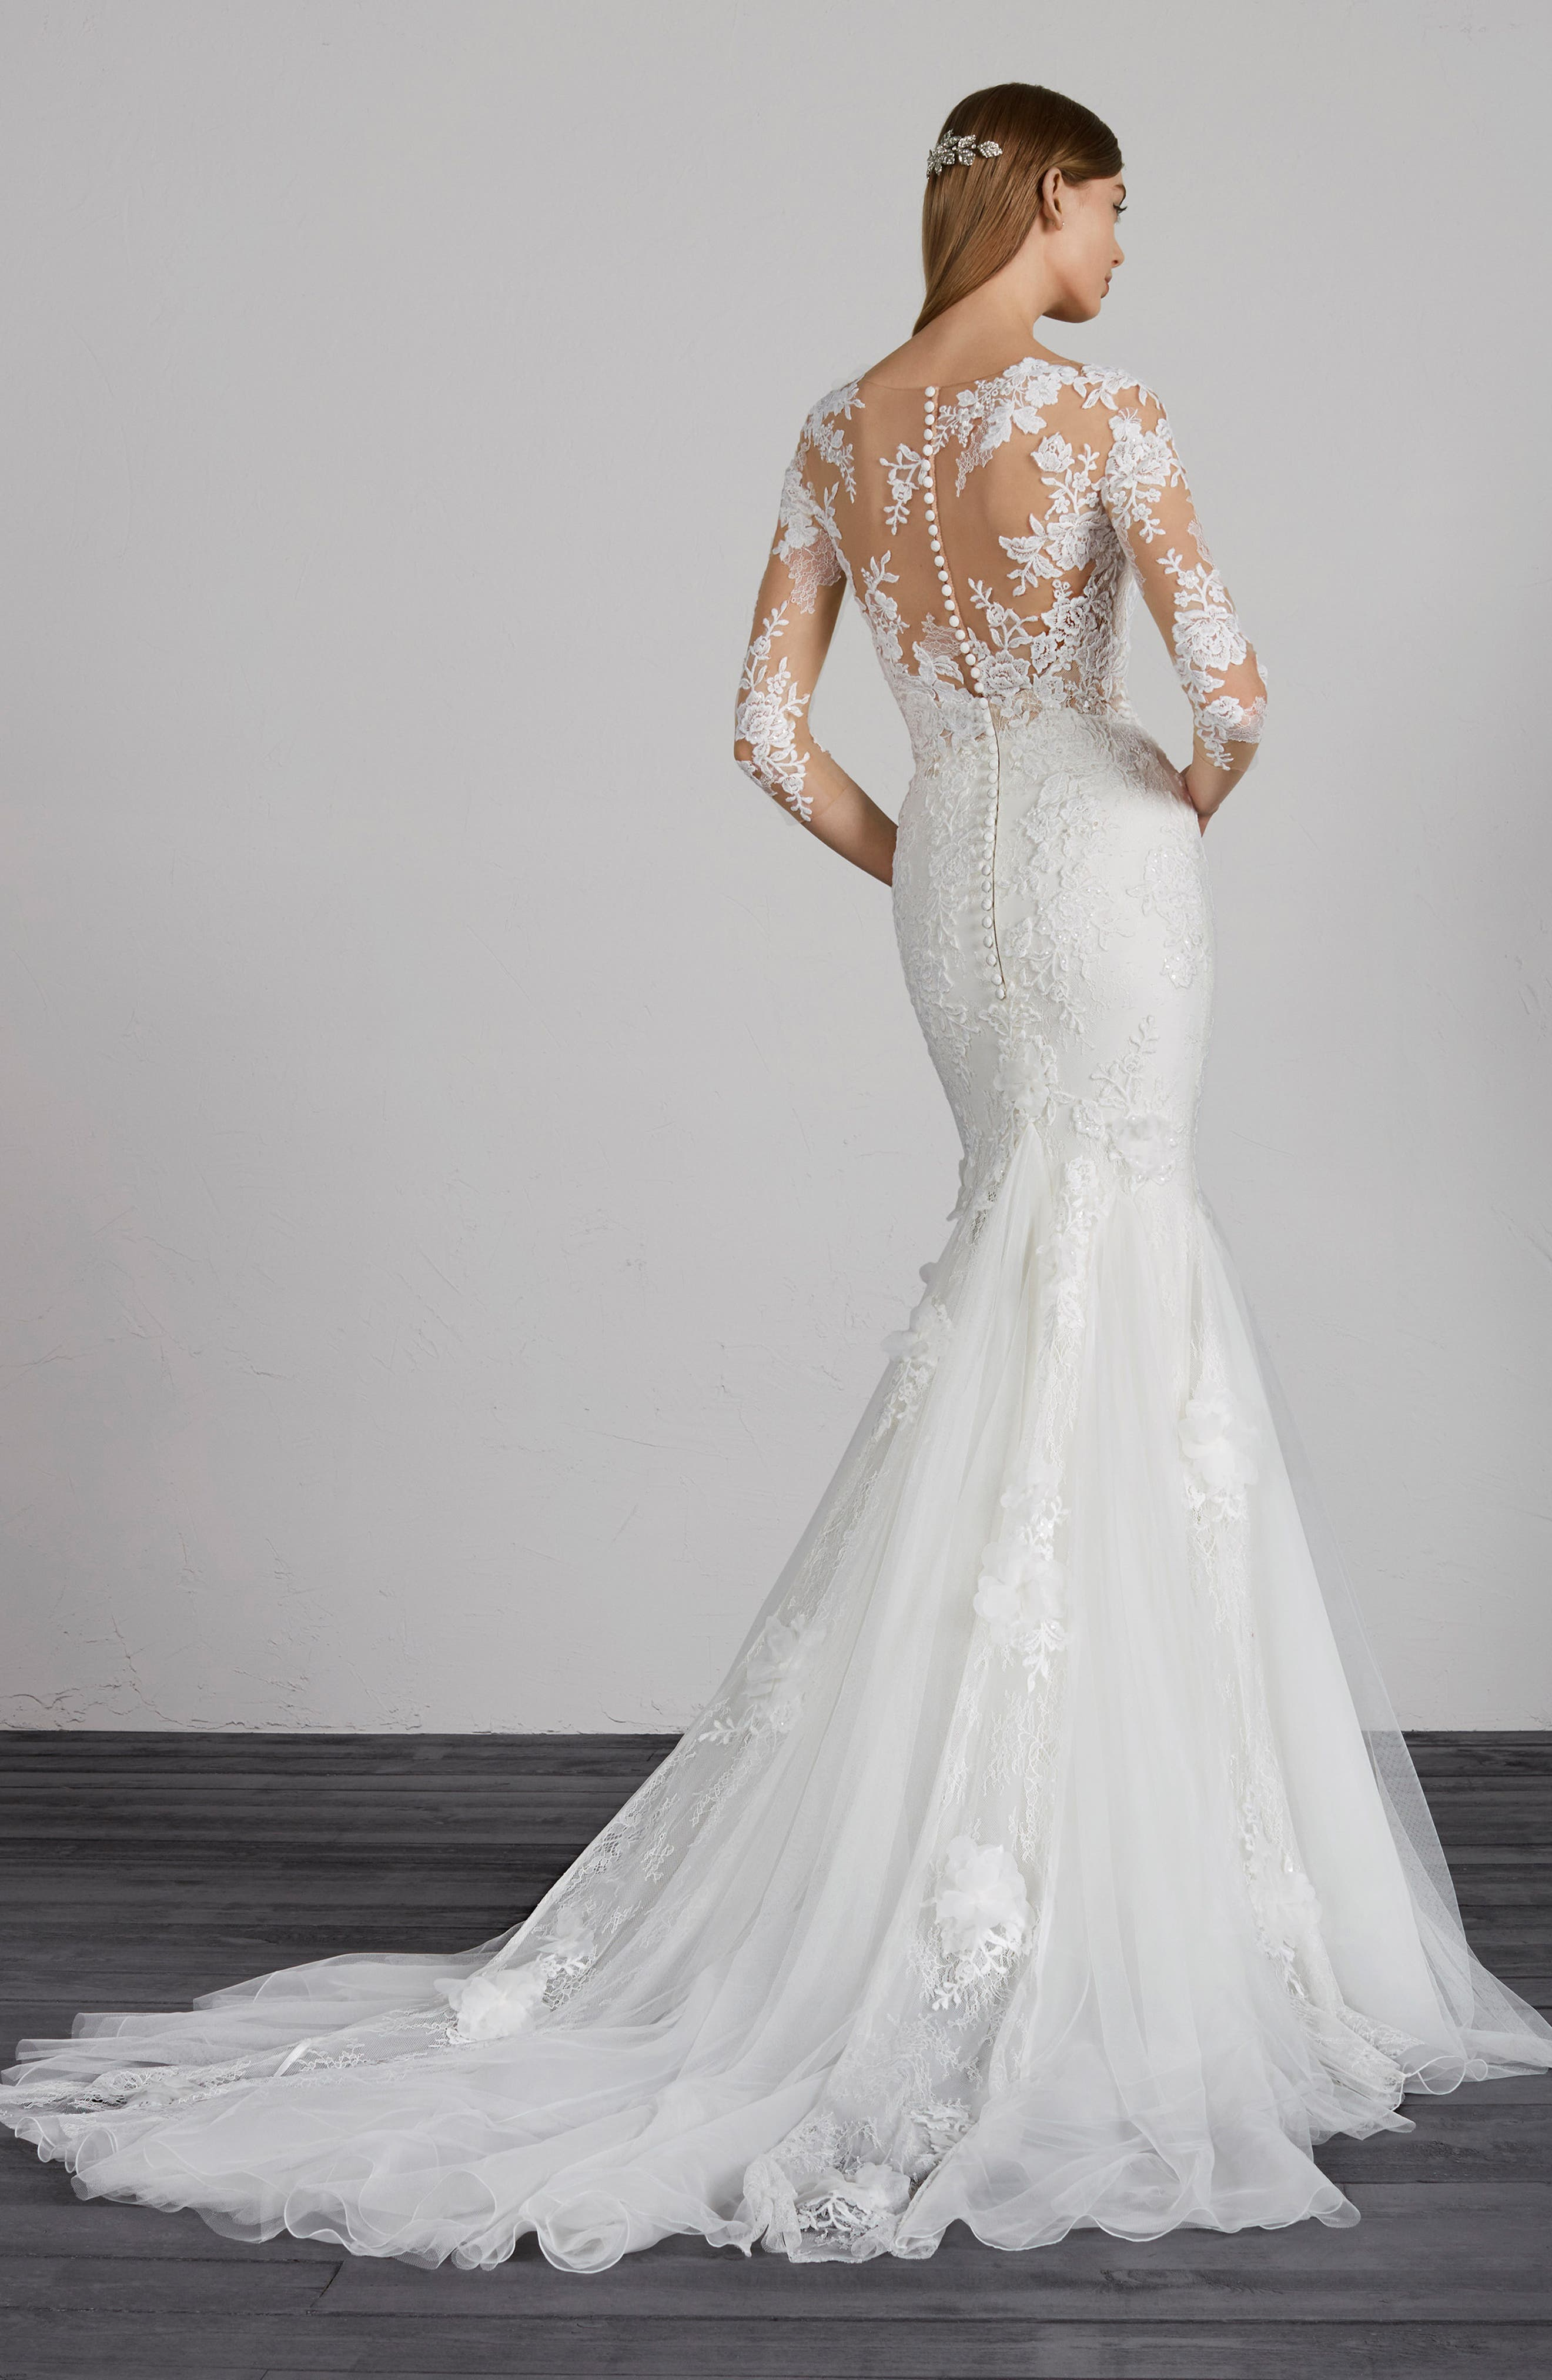 Maden Lace & Tulle Mermaid Gown,                             Alternate thumbnail 2, color,                             OFF WHITE/ CRST/ ND